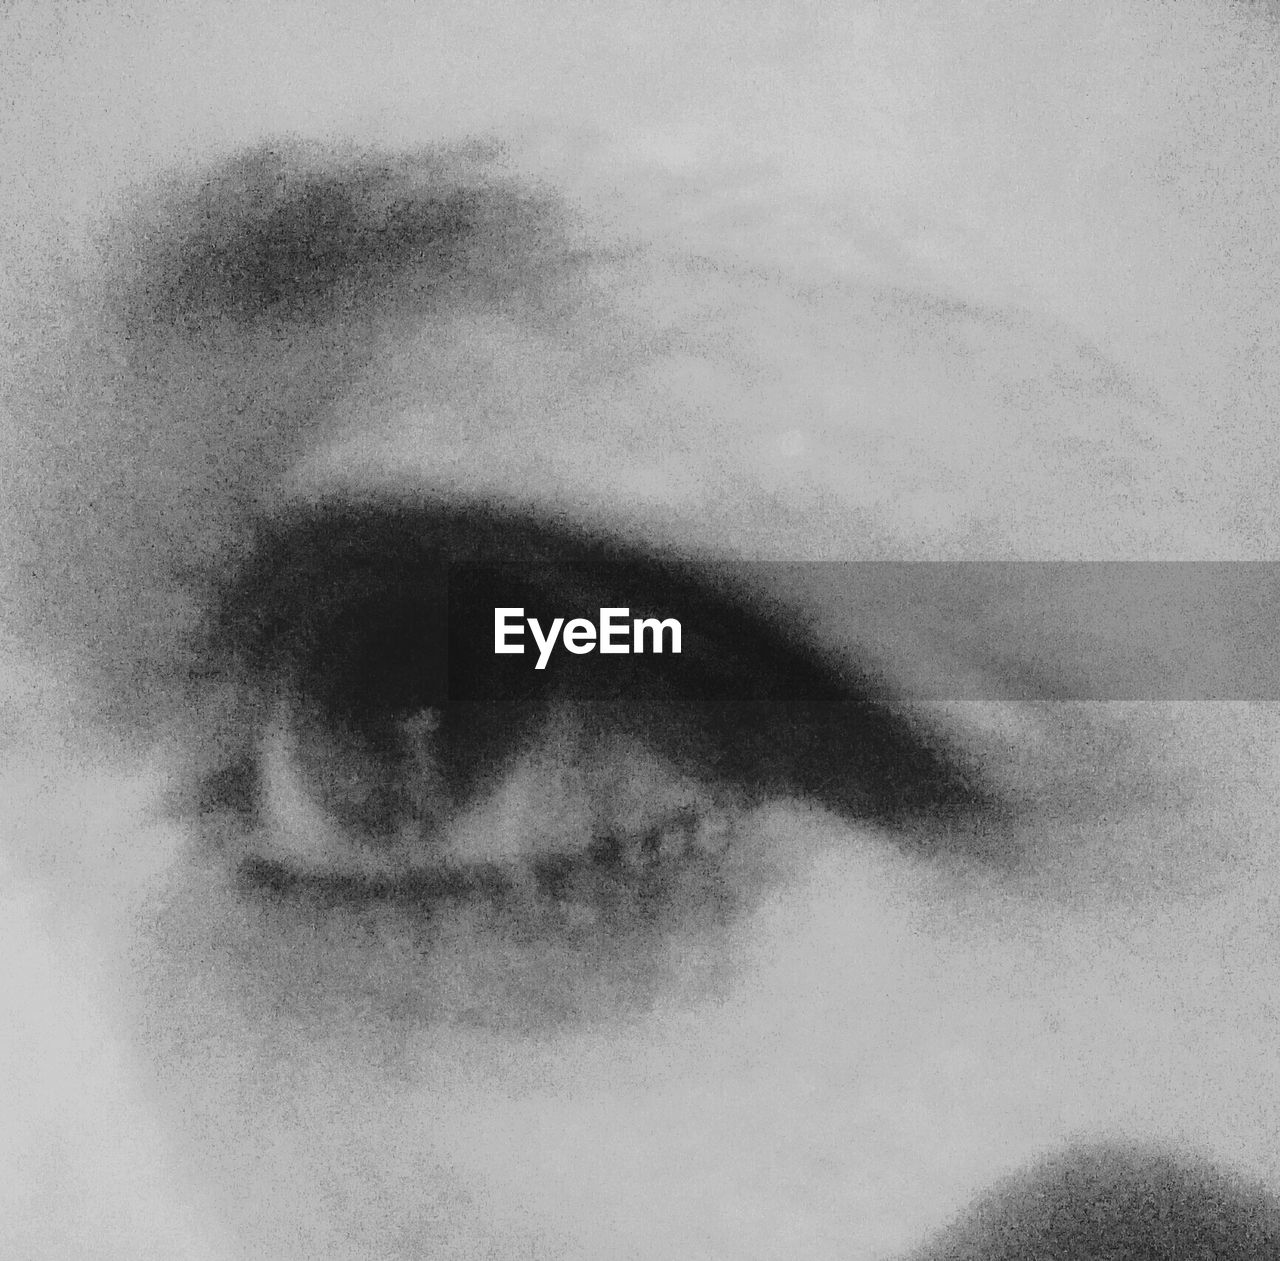 human eye, human body part, one person, human face, close-up, sensory perception, day, outdoors, eyesight, eyelash, sky, eyeball, people